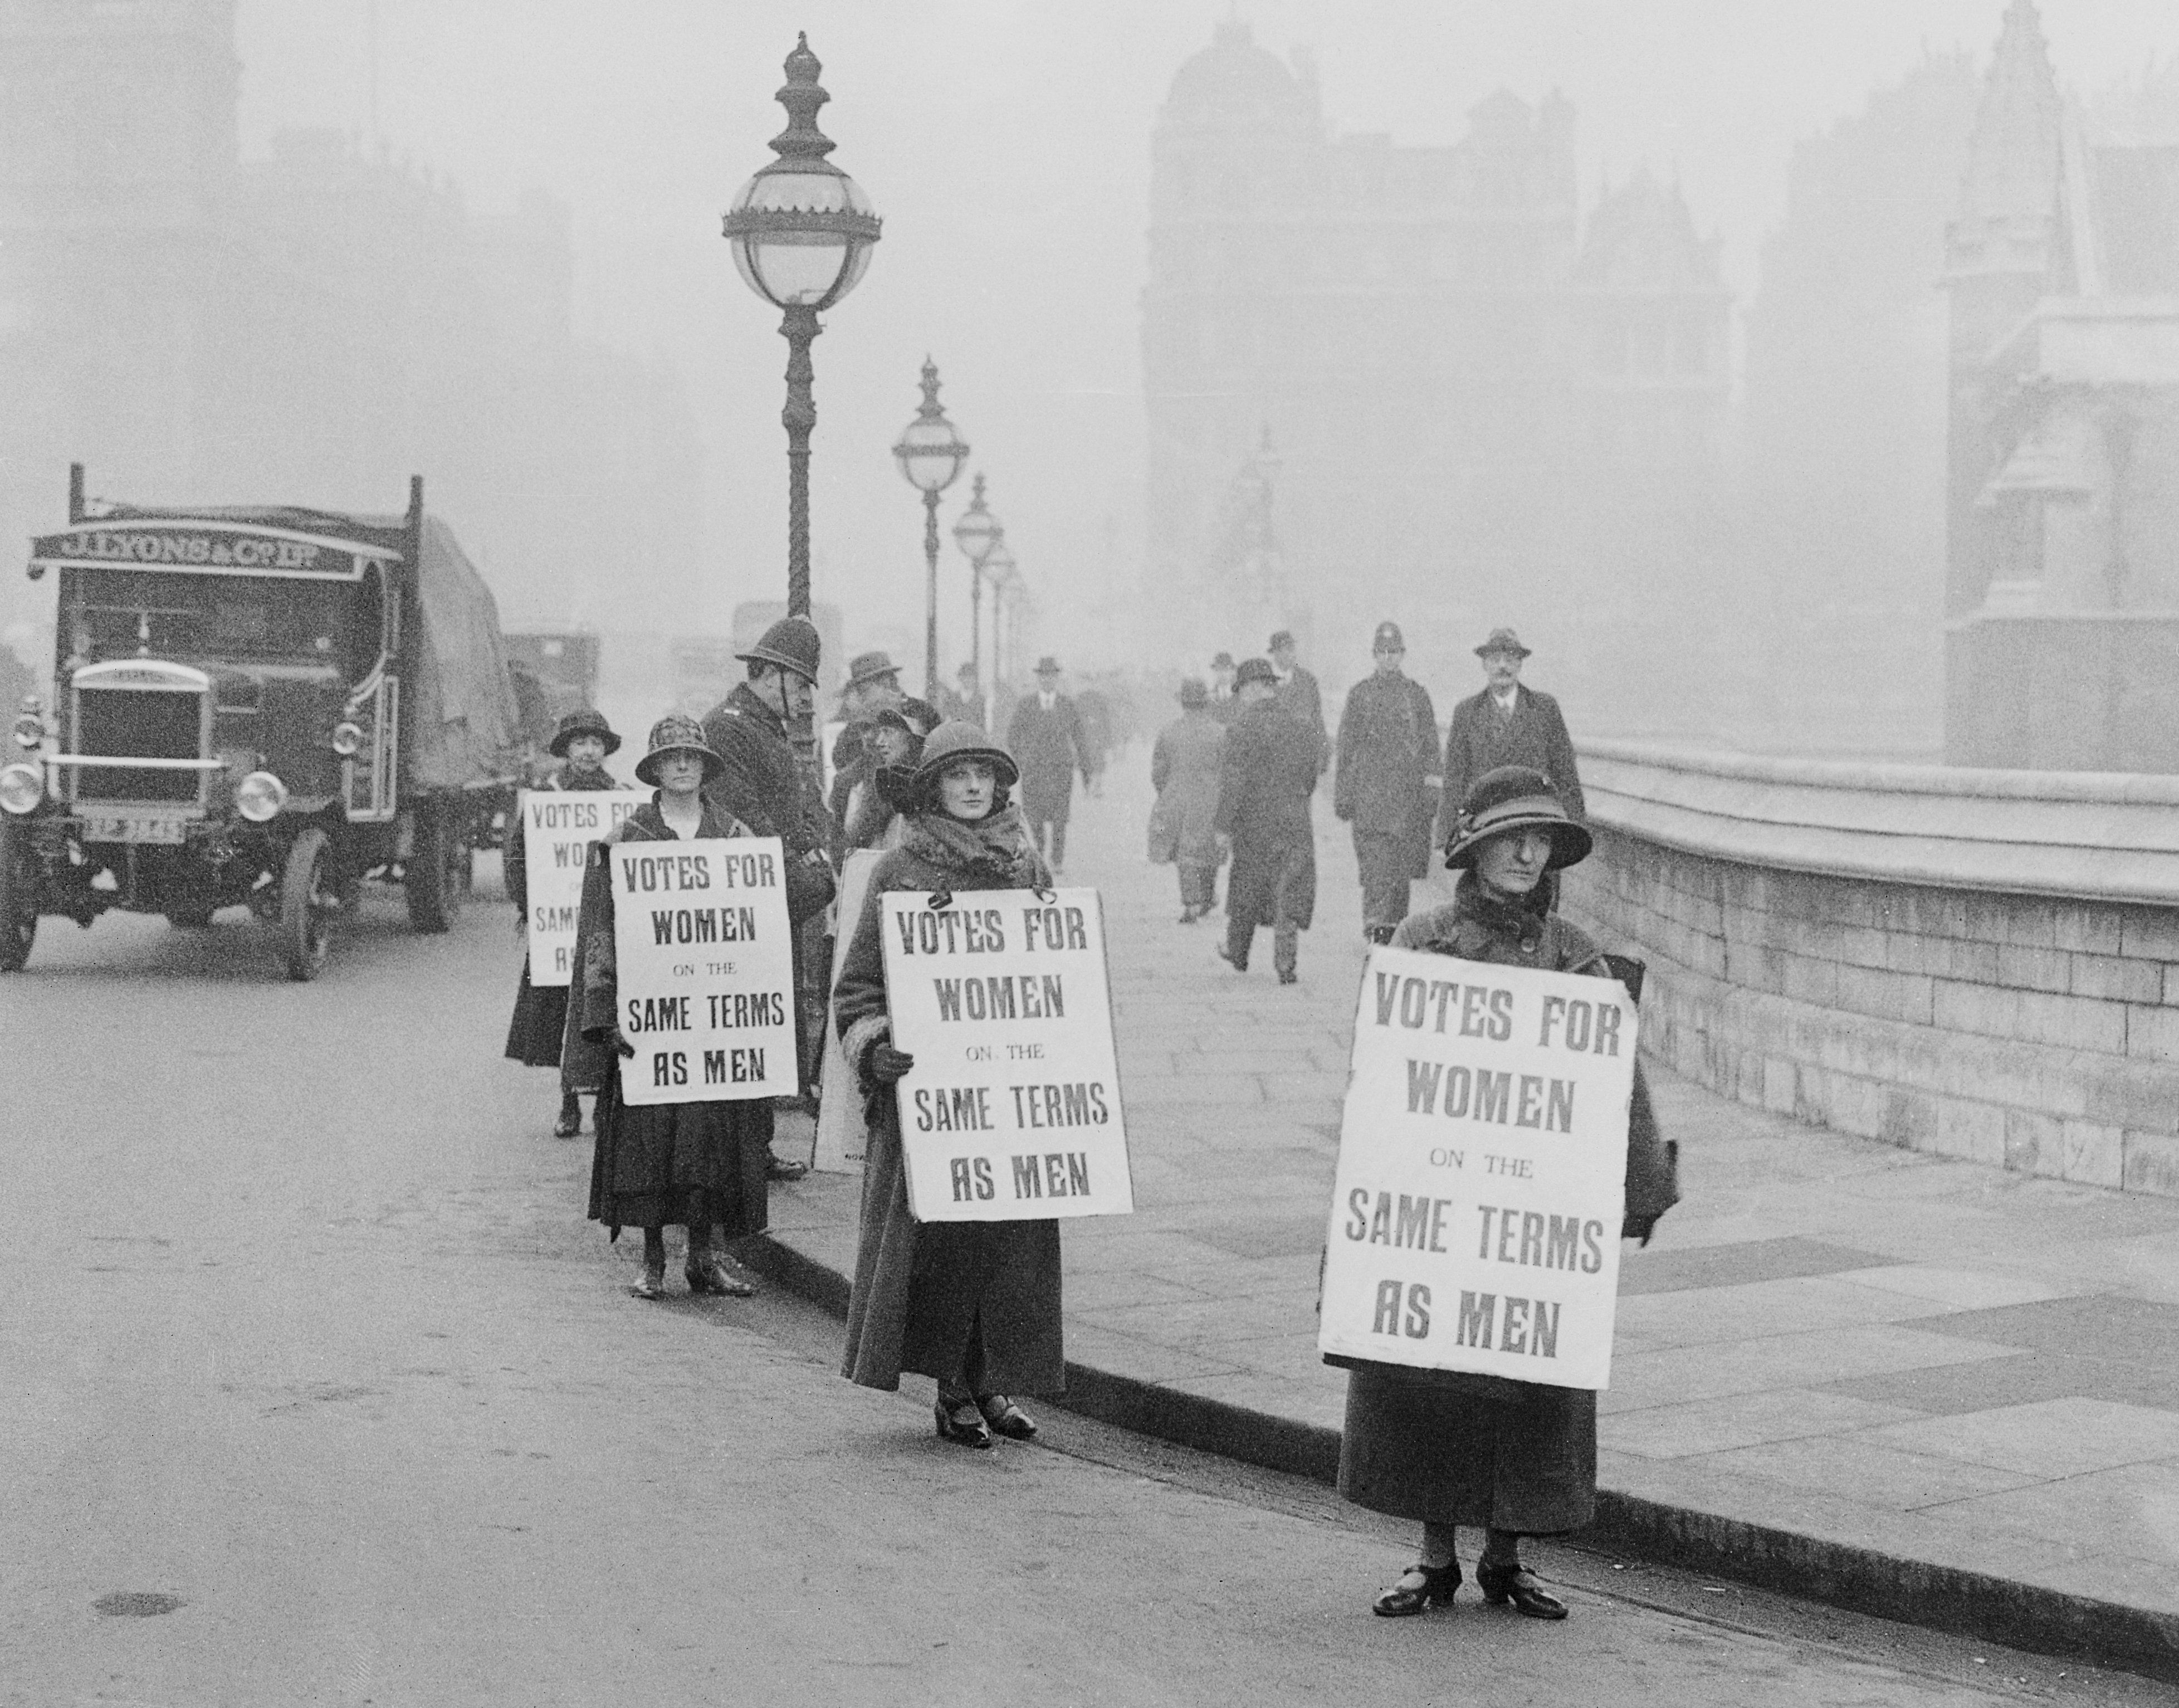 A group of suffragists picket outside the House of Commons in the early 1900s/